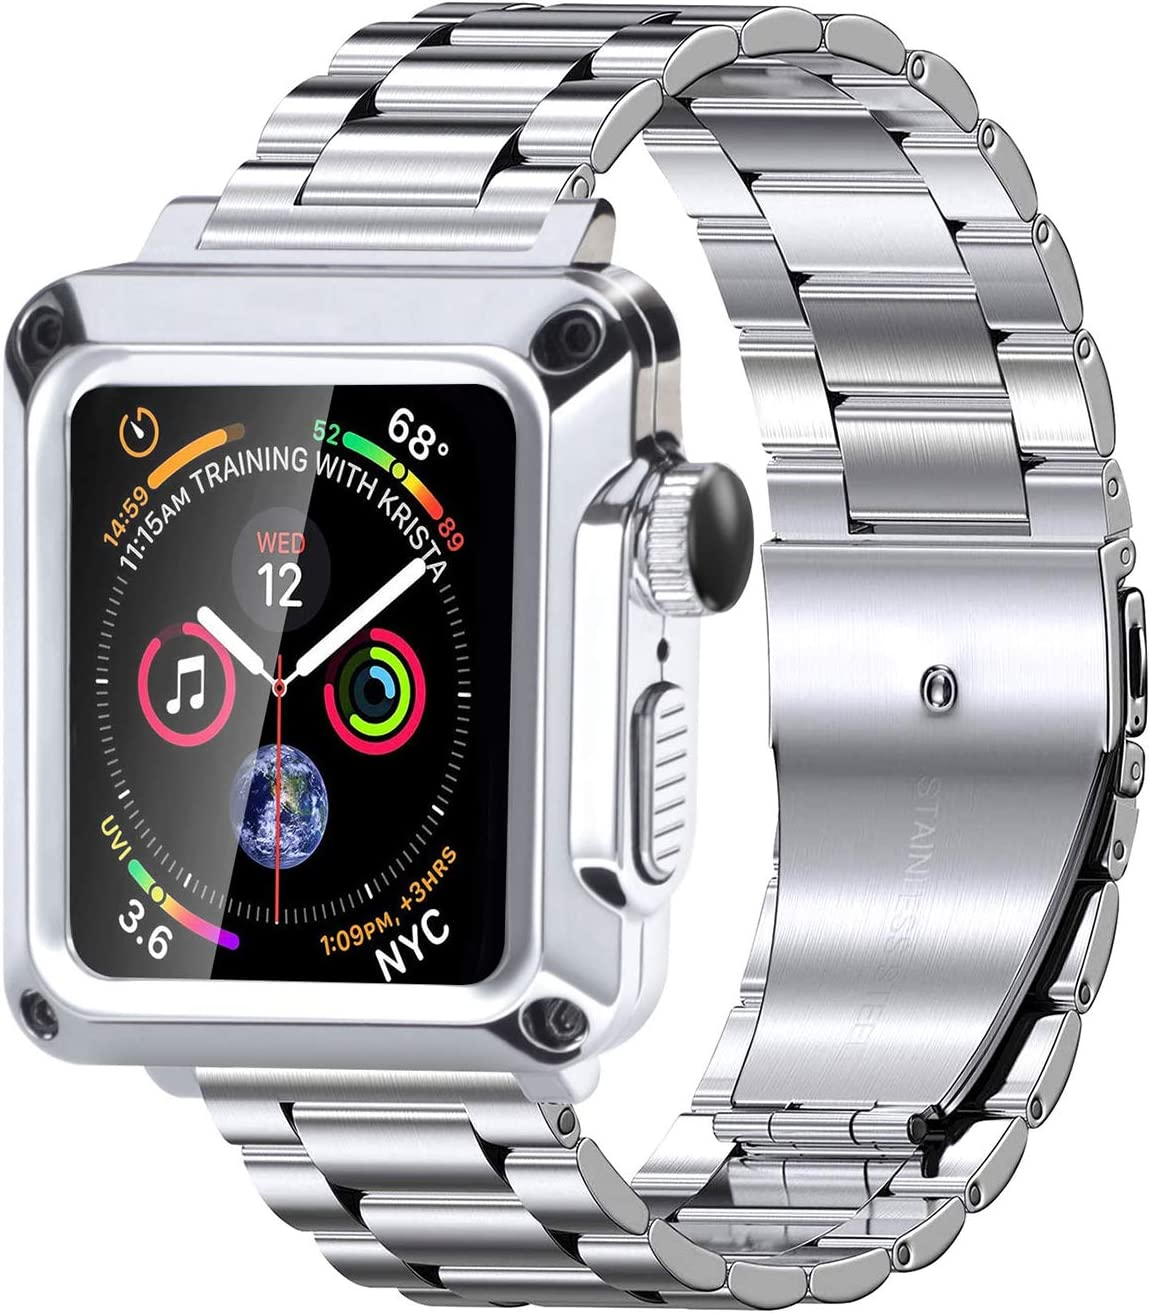 Metal Case for Apple Watch 6 Band 44mm, Stainless Steel Straps Heavy Duty Bumper Case for iwatch Series 6 SE 5 4 Strap Men's Full Protective Cover Tempered Glass Protector (44mm, Silver)